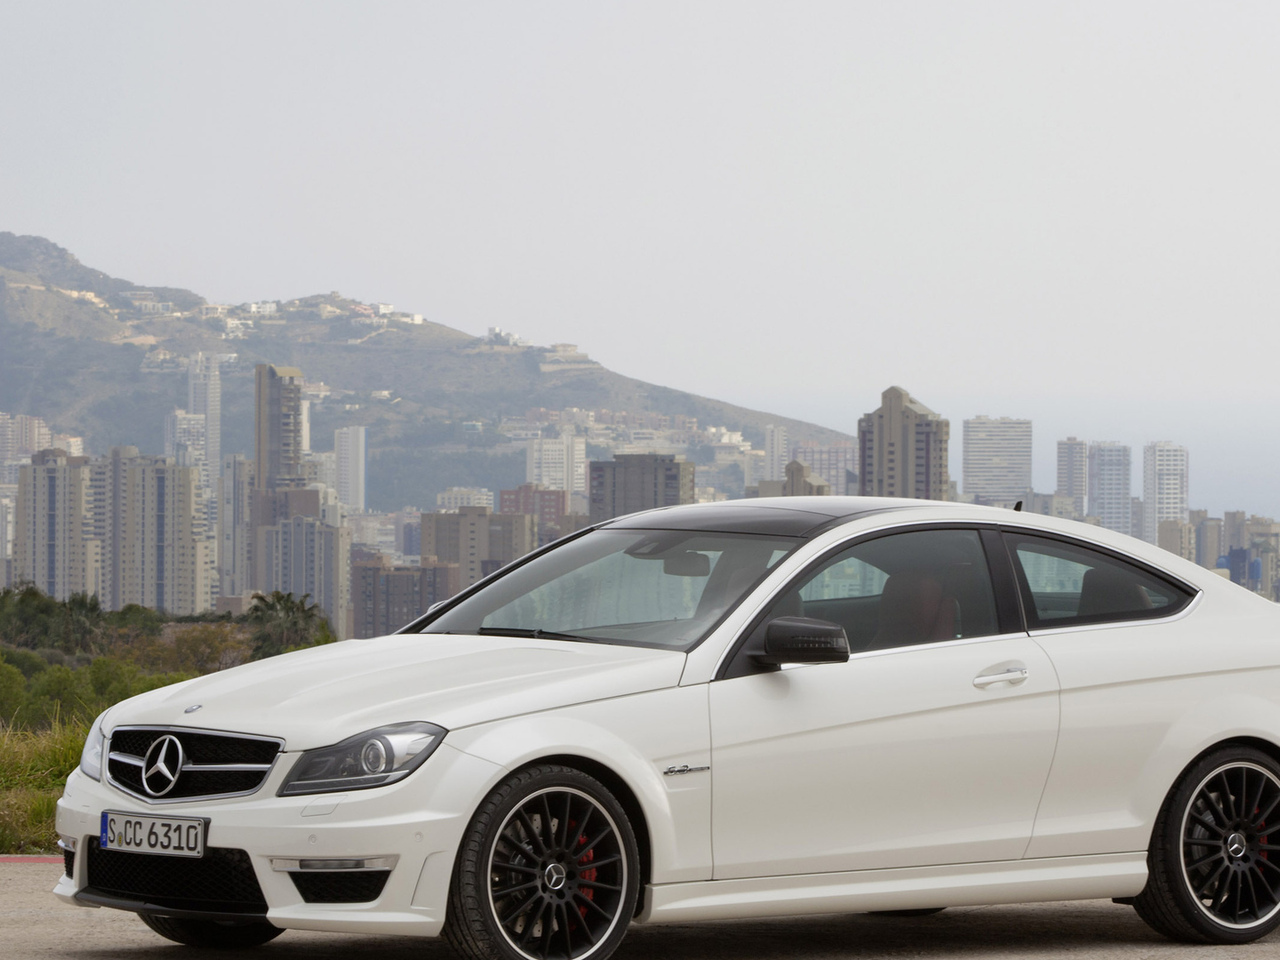 дома, здания, небо, sky, 2861x2000, houses, car, машина, трава, mercedes c63 amg coupe 2012, mountains, горы, город, grass, city, buildings